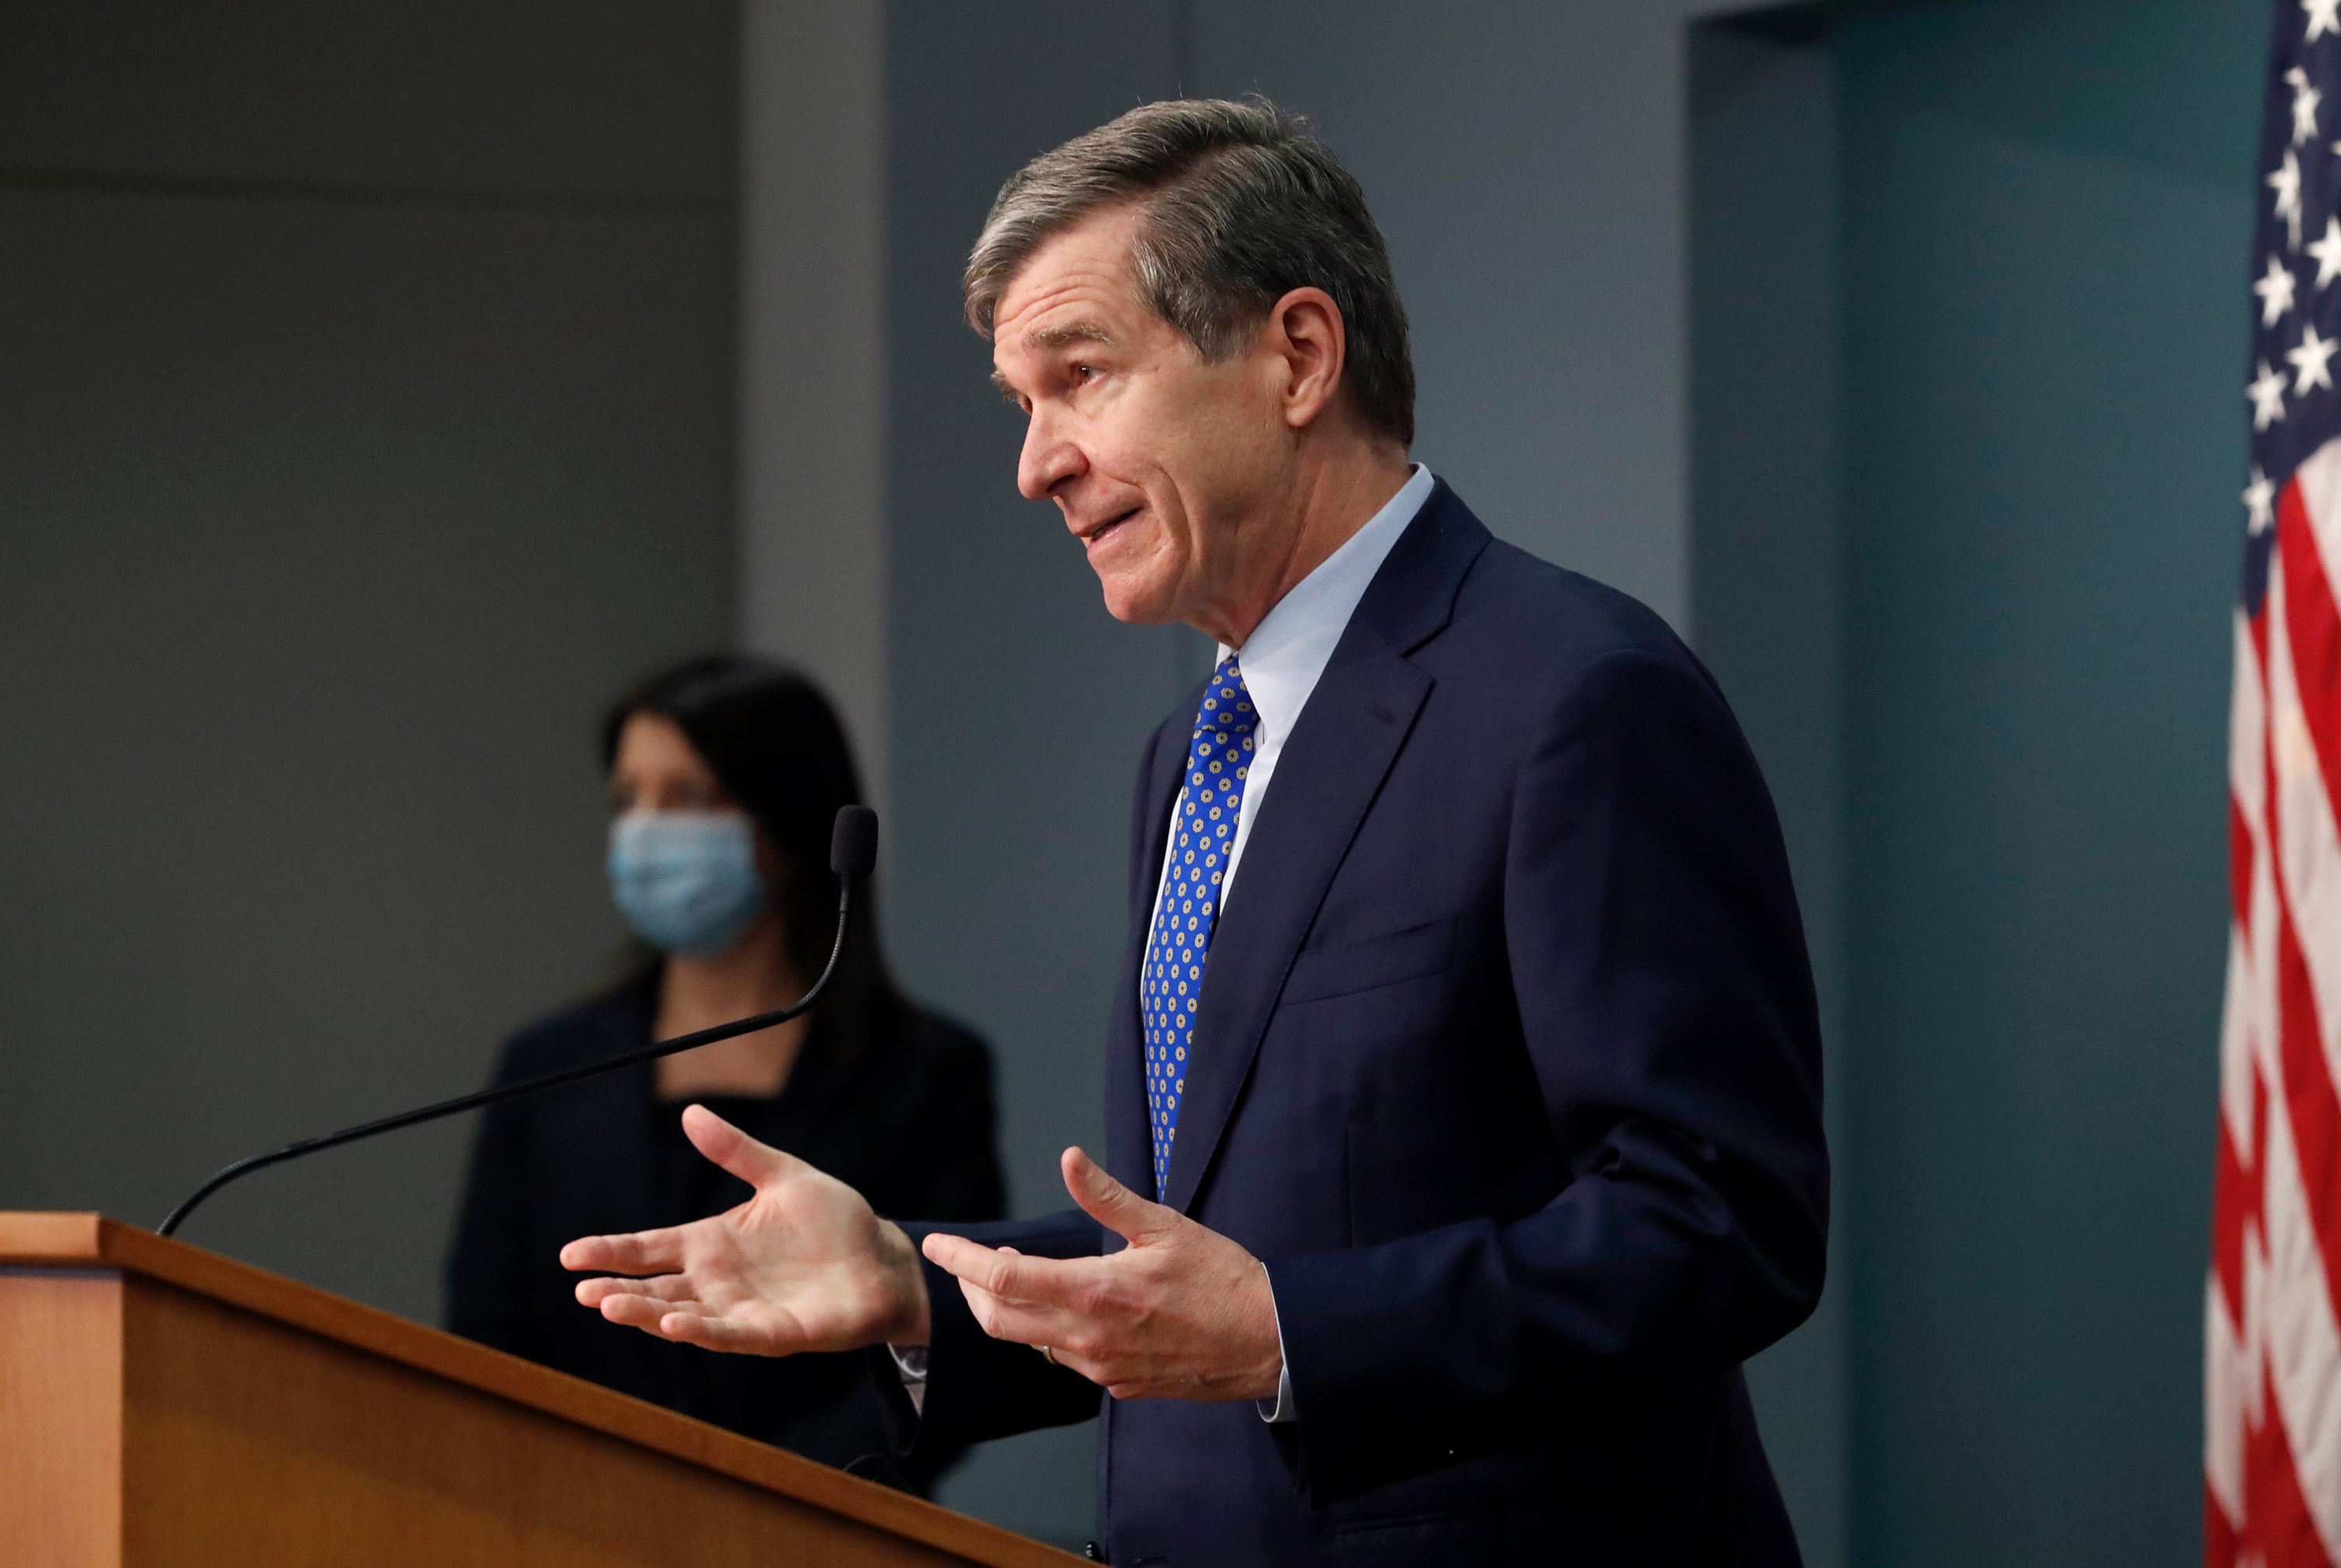 North Carolina Gov. Roy Cooper speaks during a briefing at the Emergency Operations Center in Raleigh, North Carolina, on February 24.